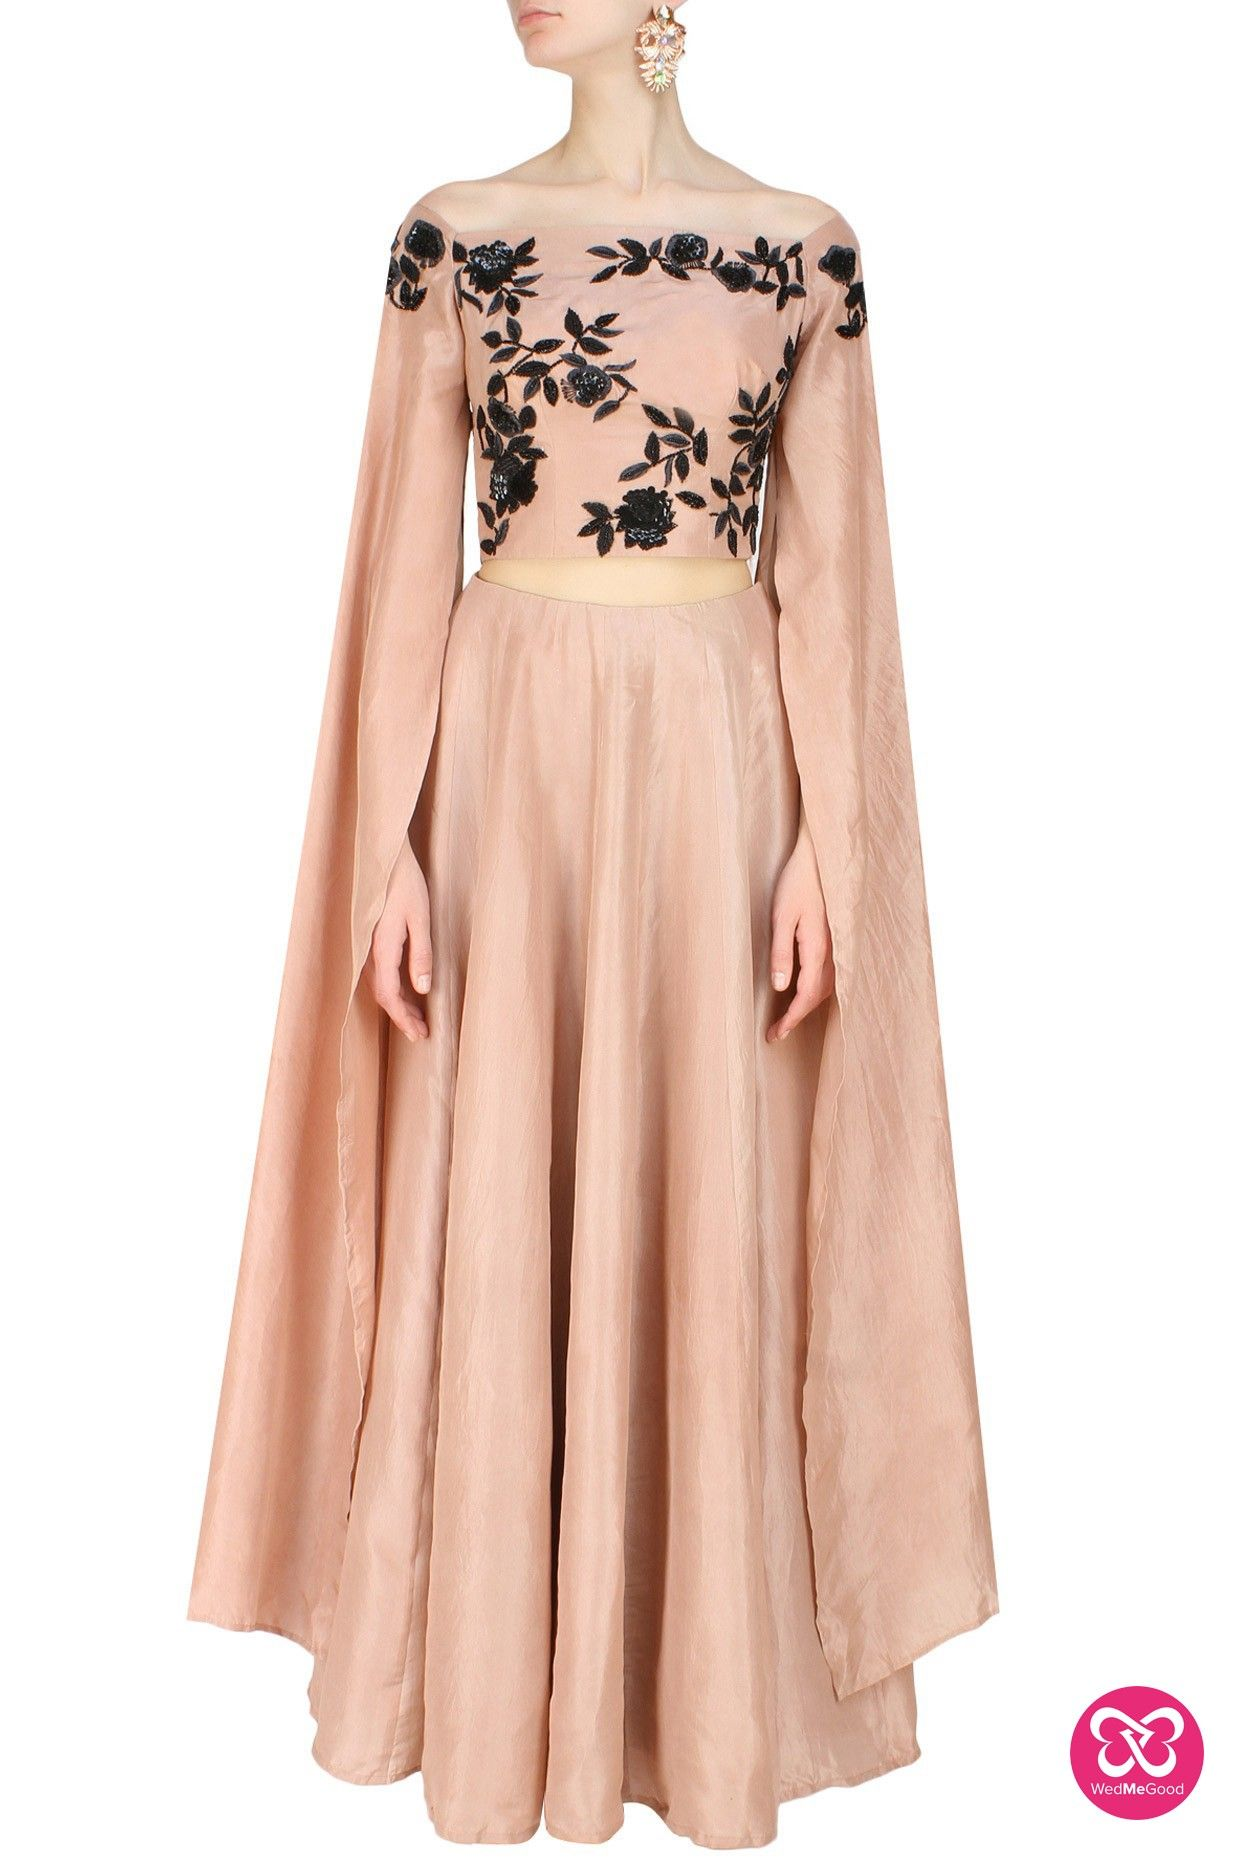 fb14769d1b319e Ank by Amrit Kaur presents Dusty rose off shoulder wing sleeves embroidered  blouse and lehenga set available only at Pernia's Pop Up Shop.